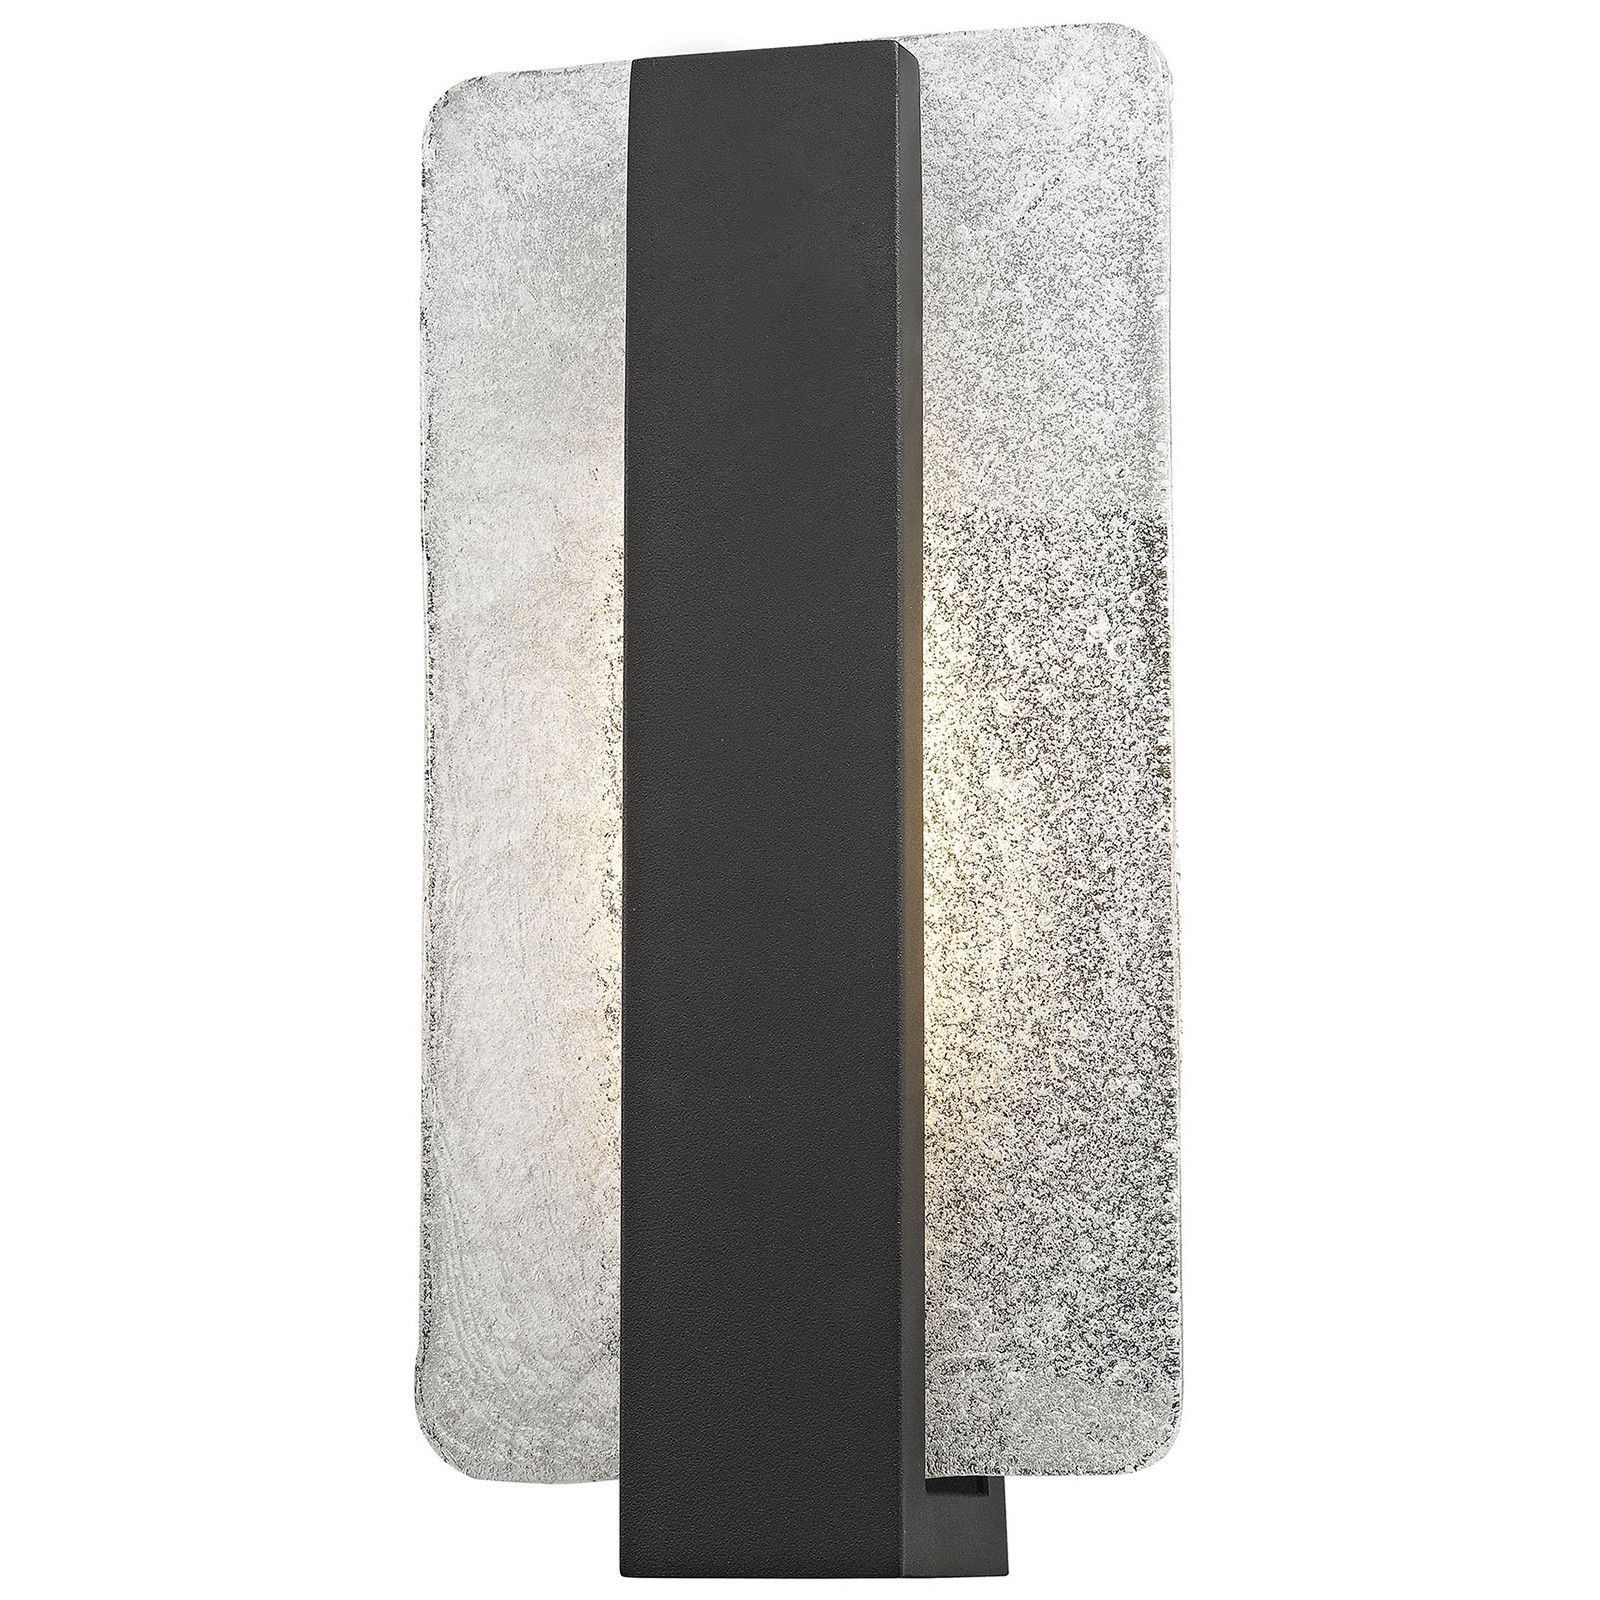 Pierre led outdoor wall sconce with textured matte black wall